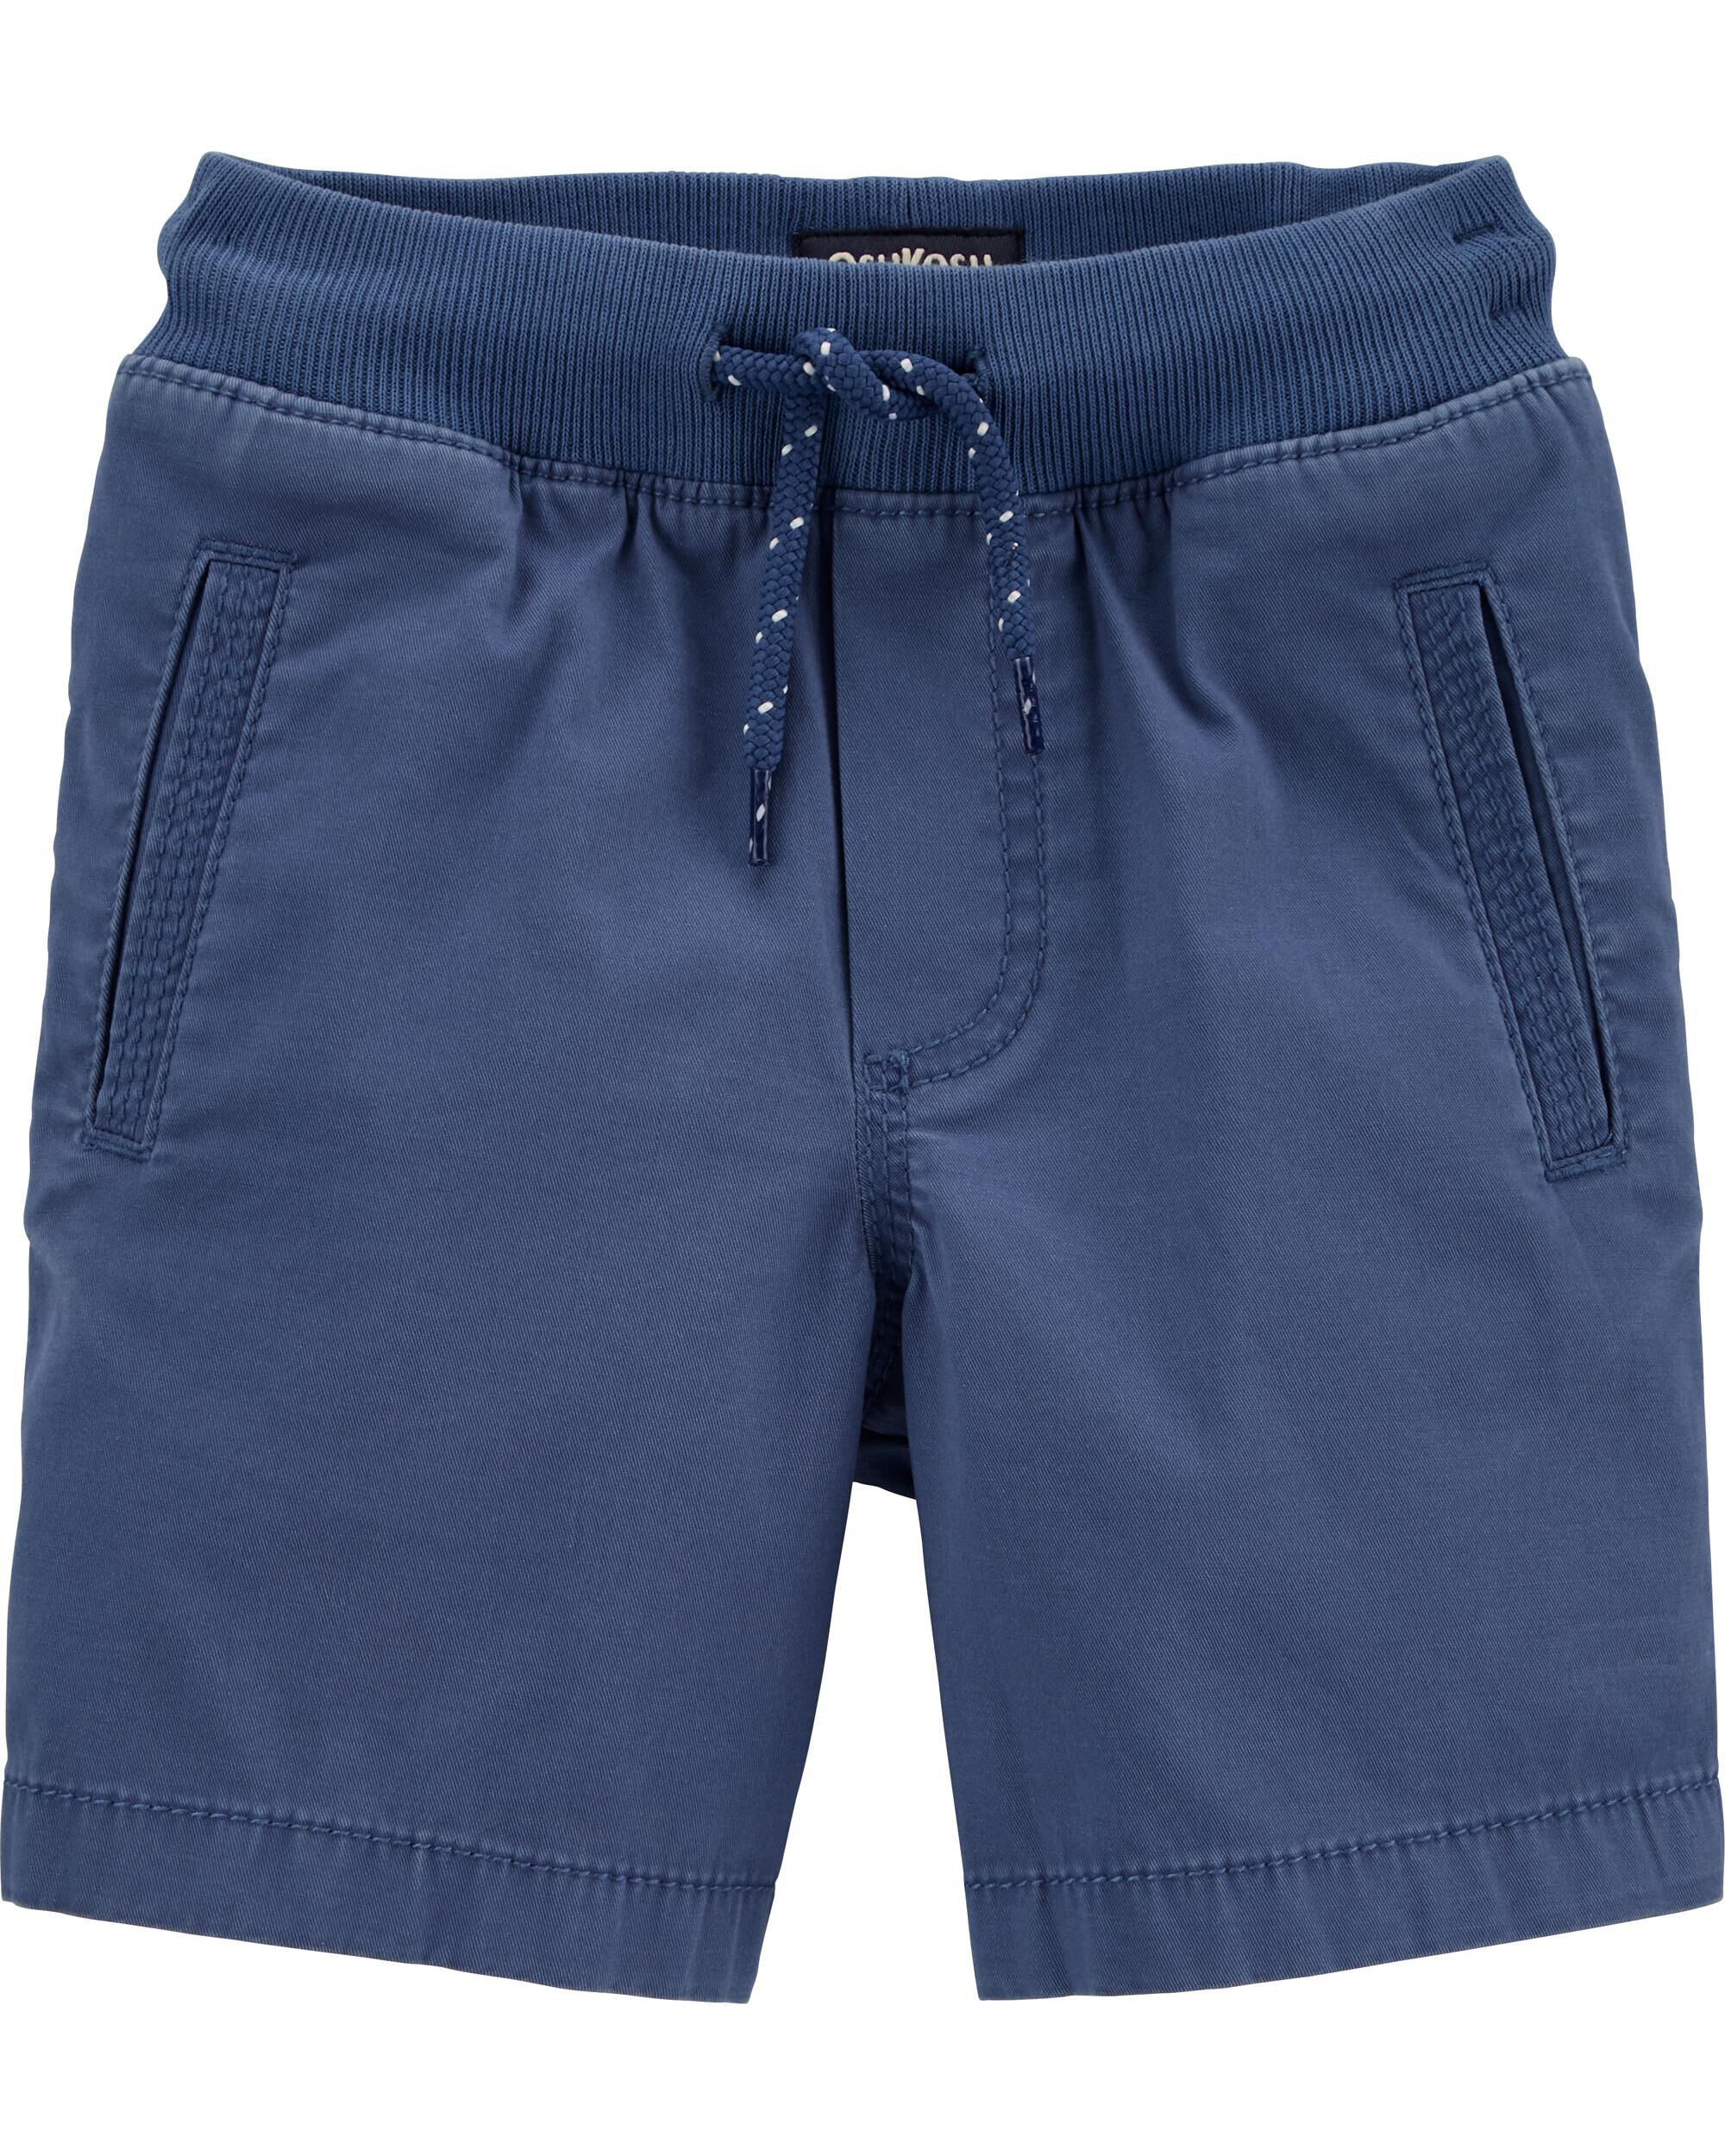 Oshkosh Bgosh Boys Kids Stretch Flat Front Short Osh Kosh Shorts Boys